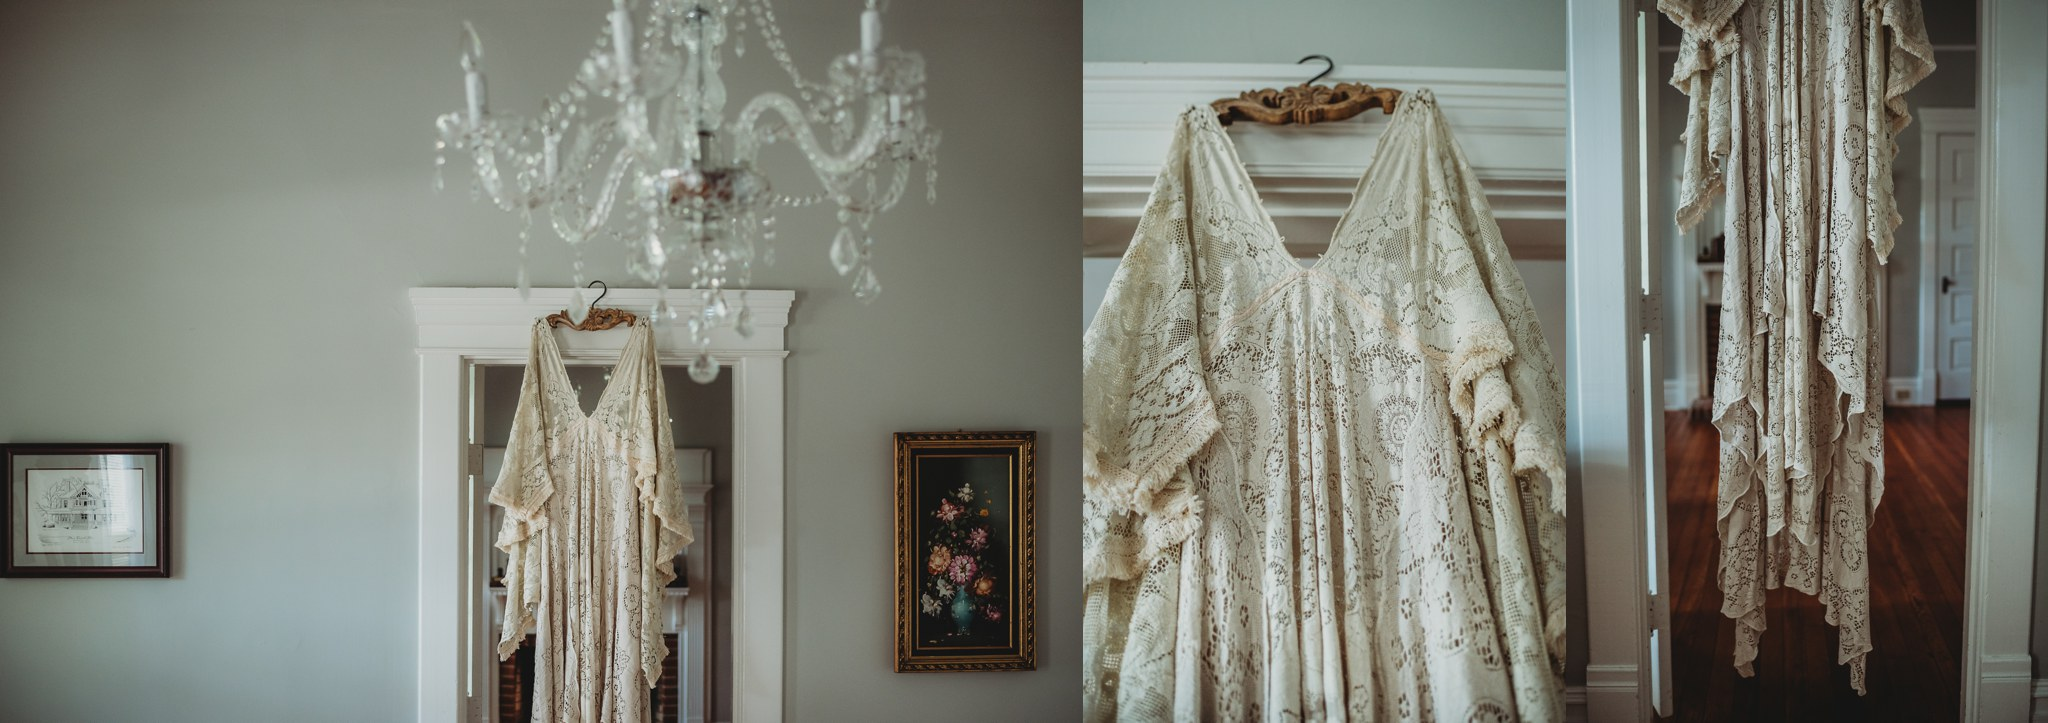 Images of a Reclamation boho vintage lace dress at the Mason Street Manor, available for rent in Rolesville North Carolina by Rose Trail Images.